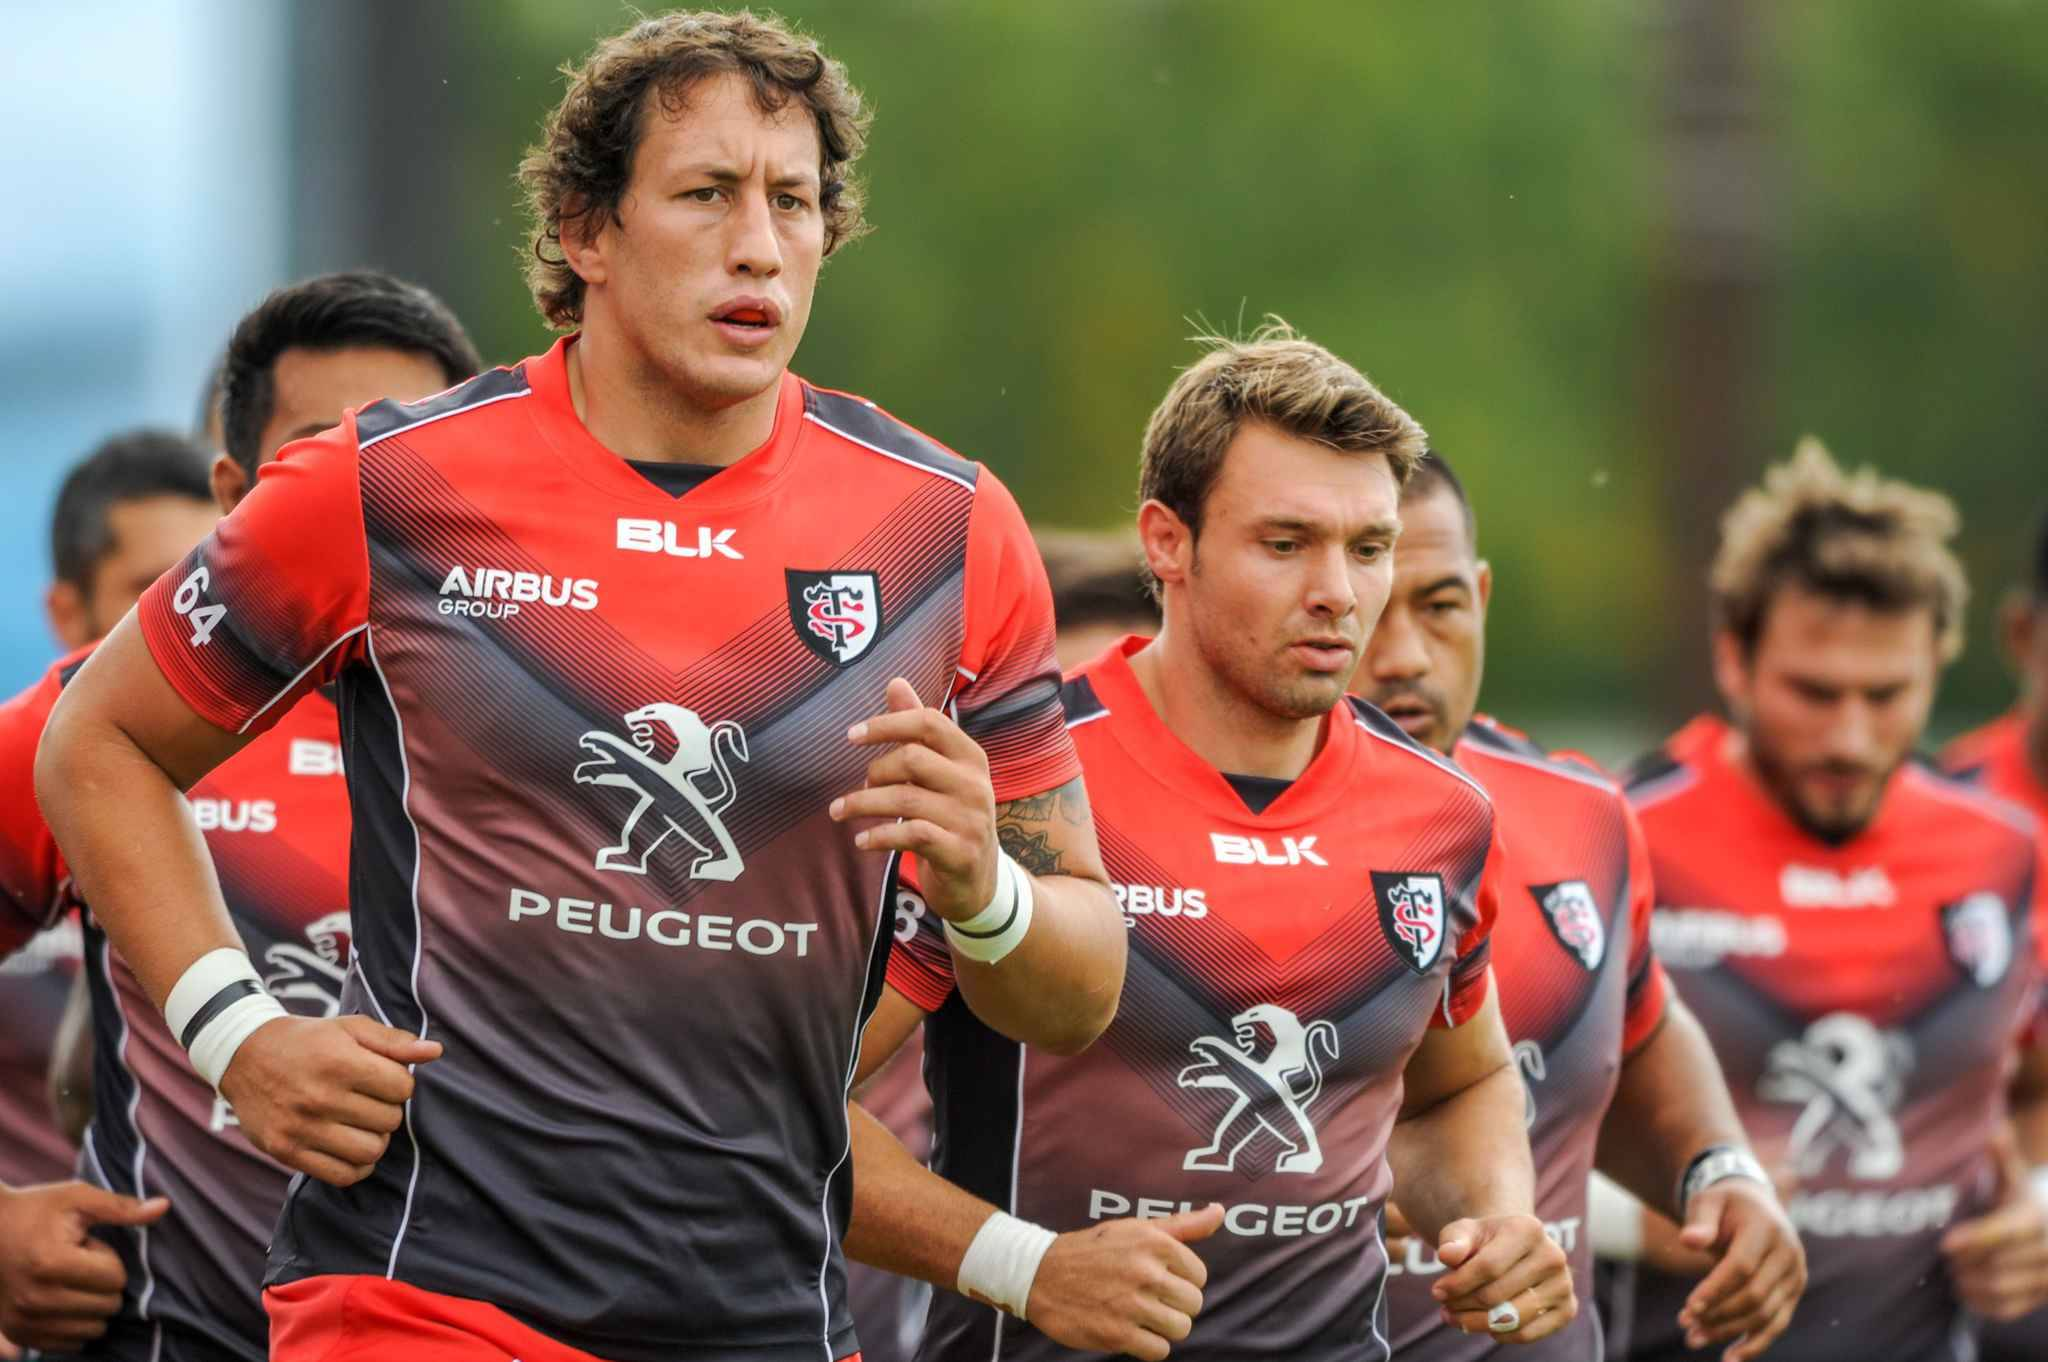 calendrier rencontres top 14 rugby